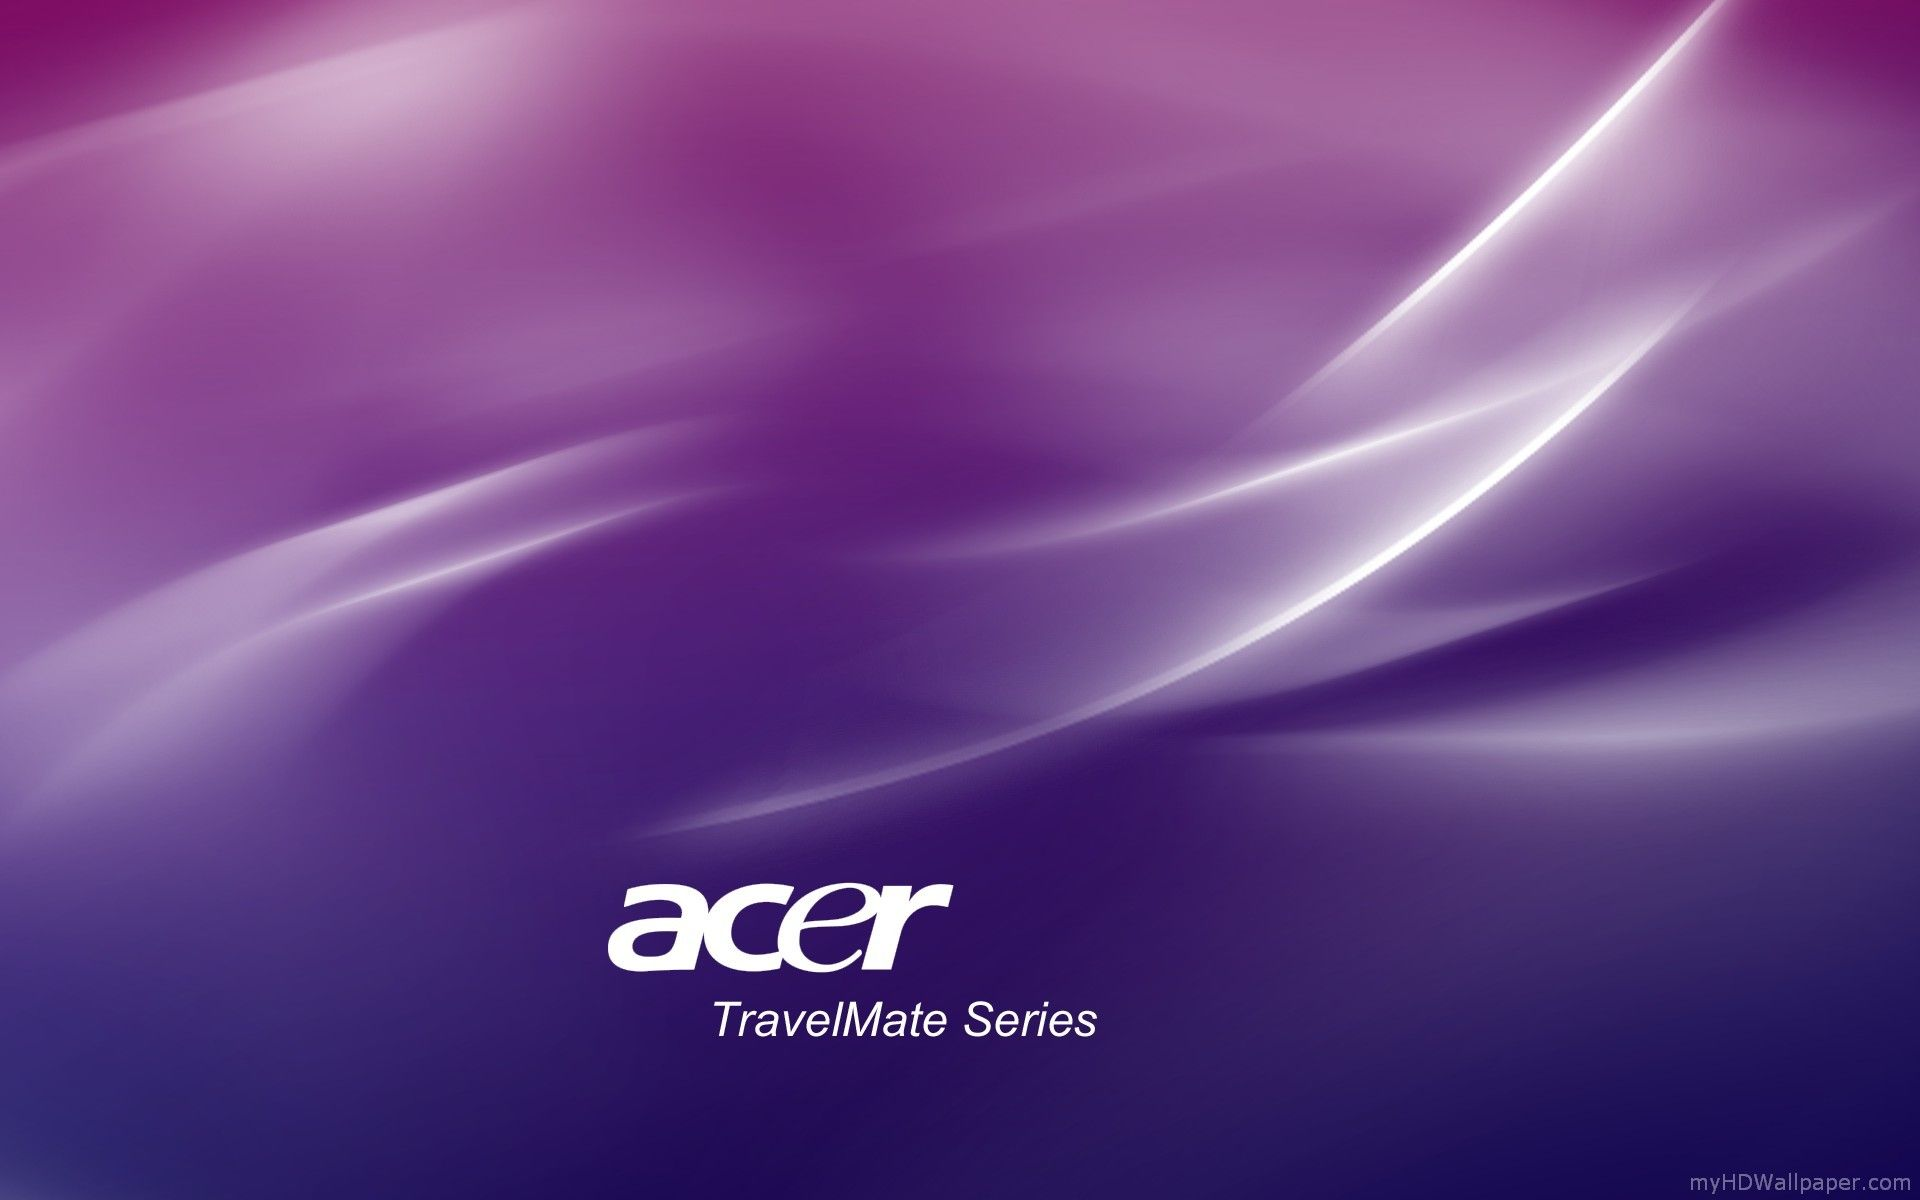 1920x1200 Acer Wallpaper Wallpapers Browse Hd Wallpapers Pinterest Wallpaper Acer Desktop Acer Acer Travelmate